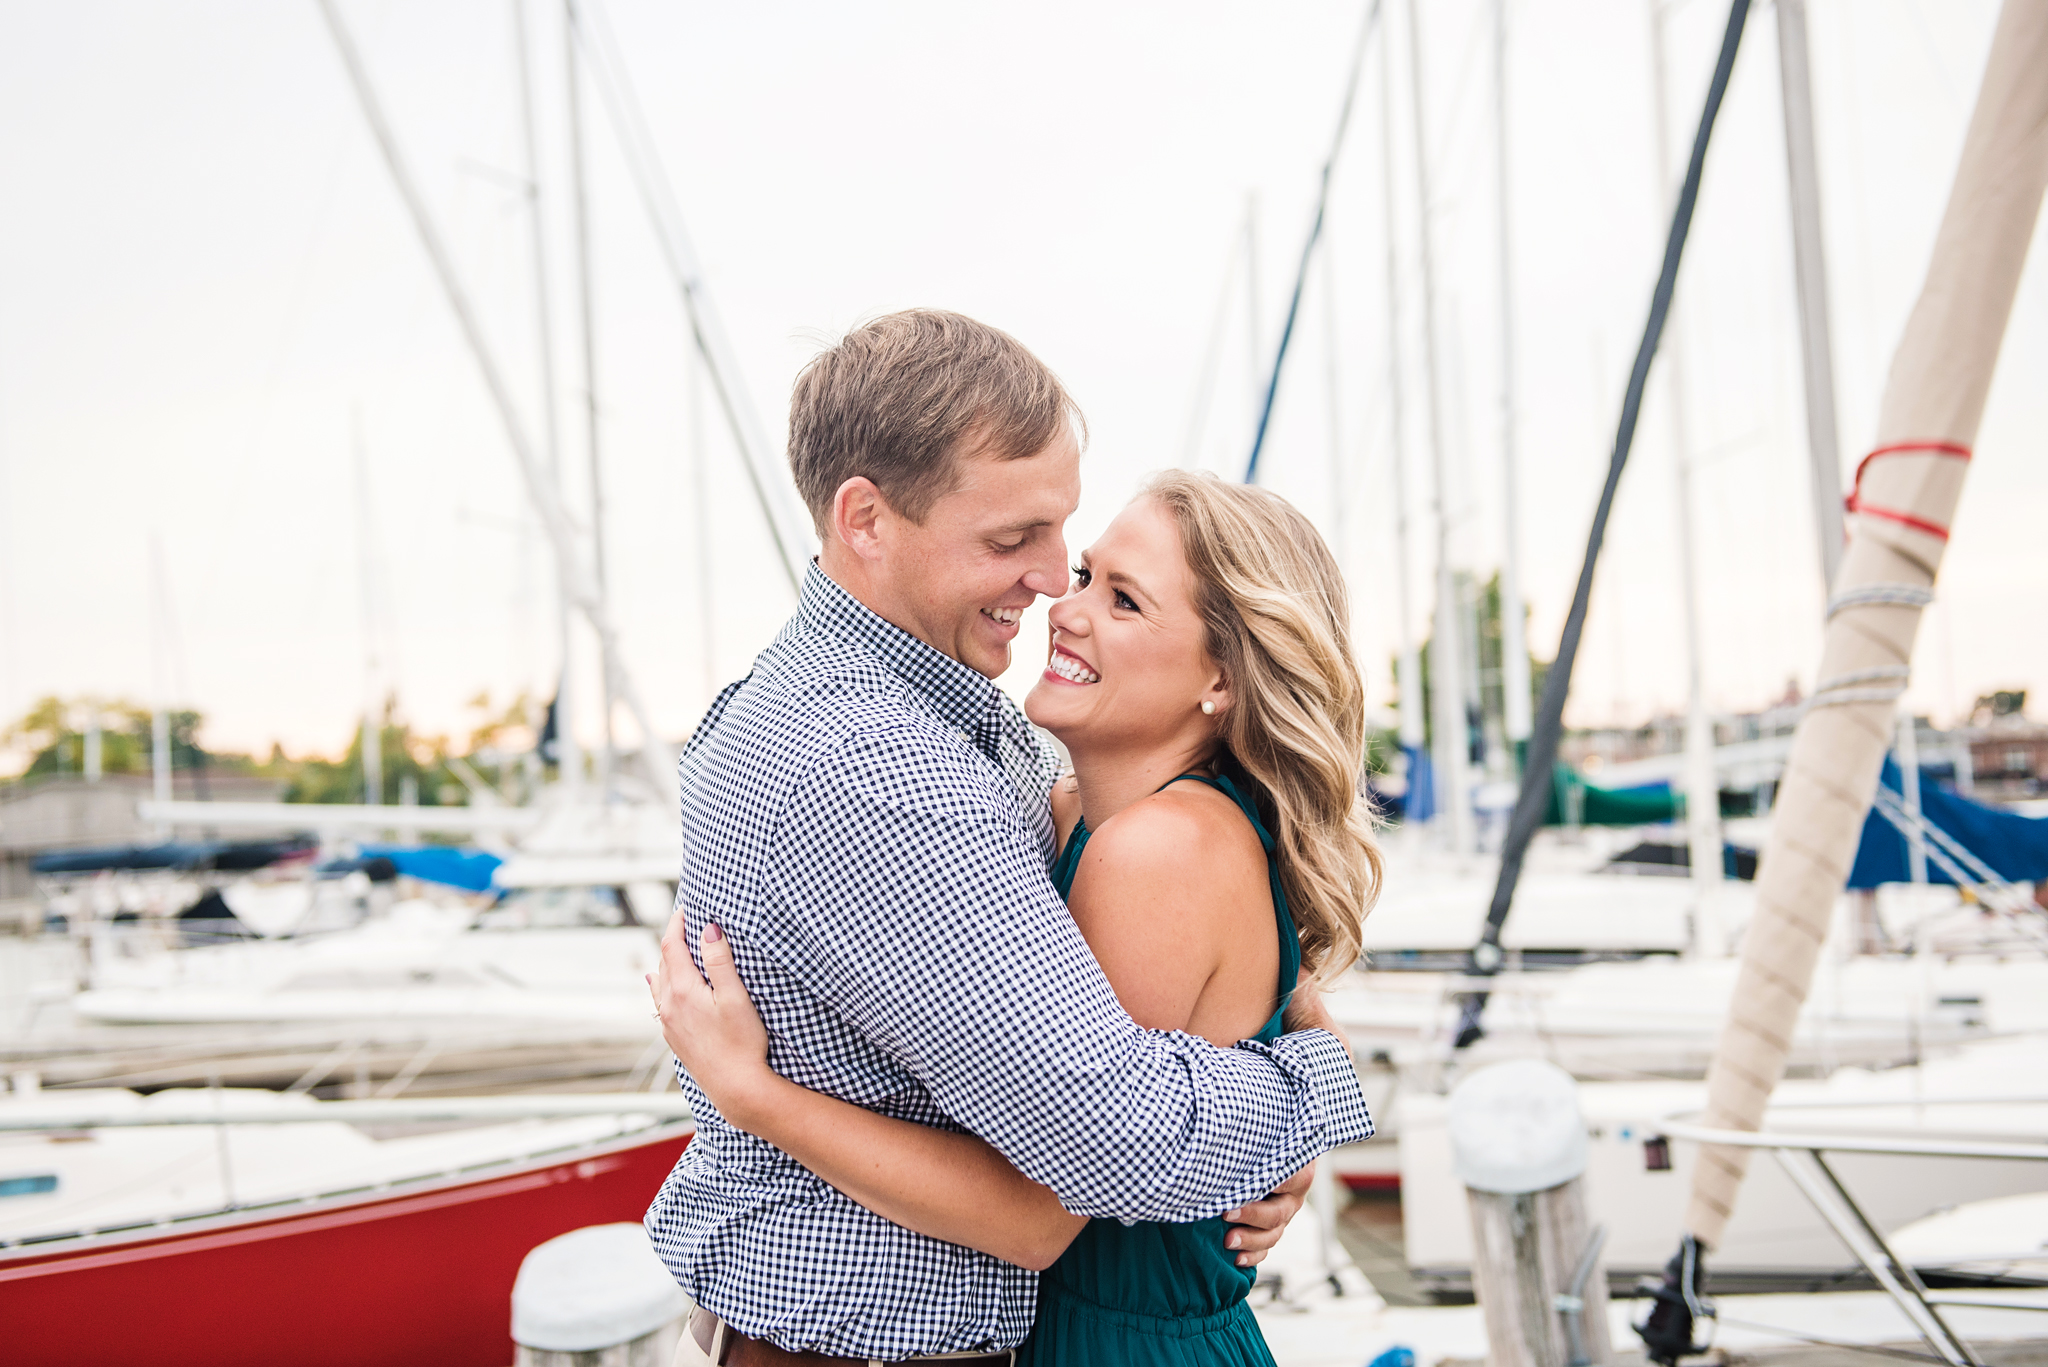 George_Eastman_House_Rochester_Yacht_Club_Rochester_Engagement_Session_JILL_STUDIO_Rochester_NY_Photographer_DSC_8178.jpg